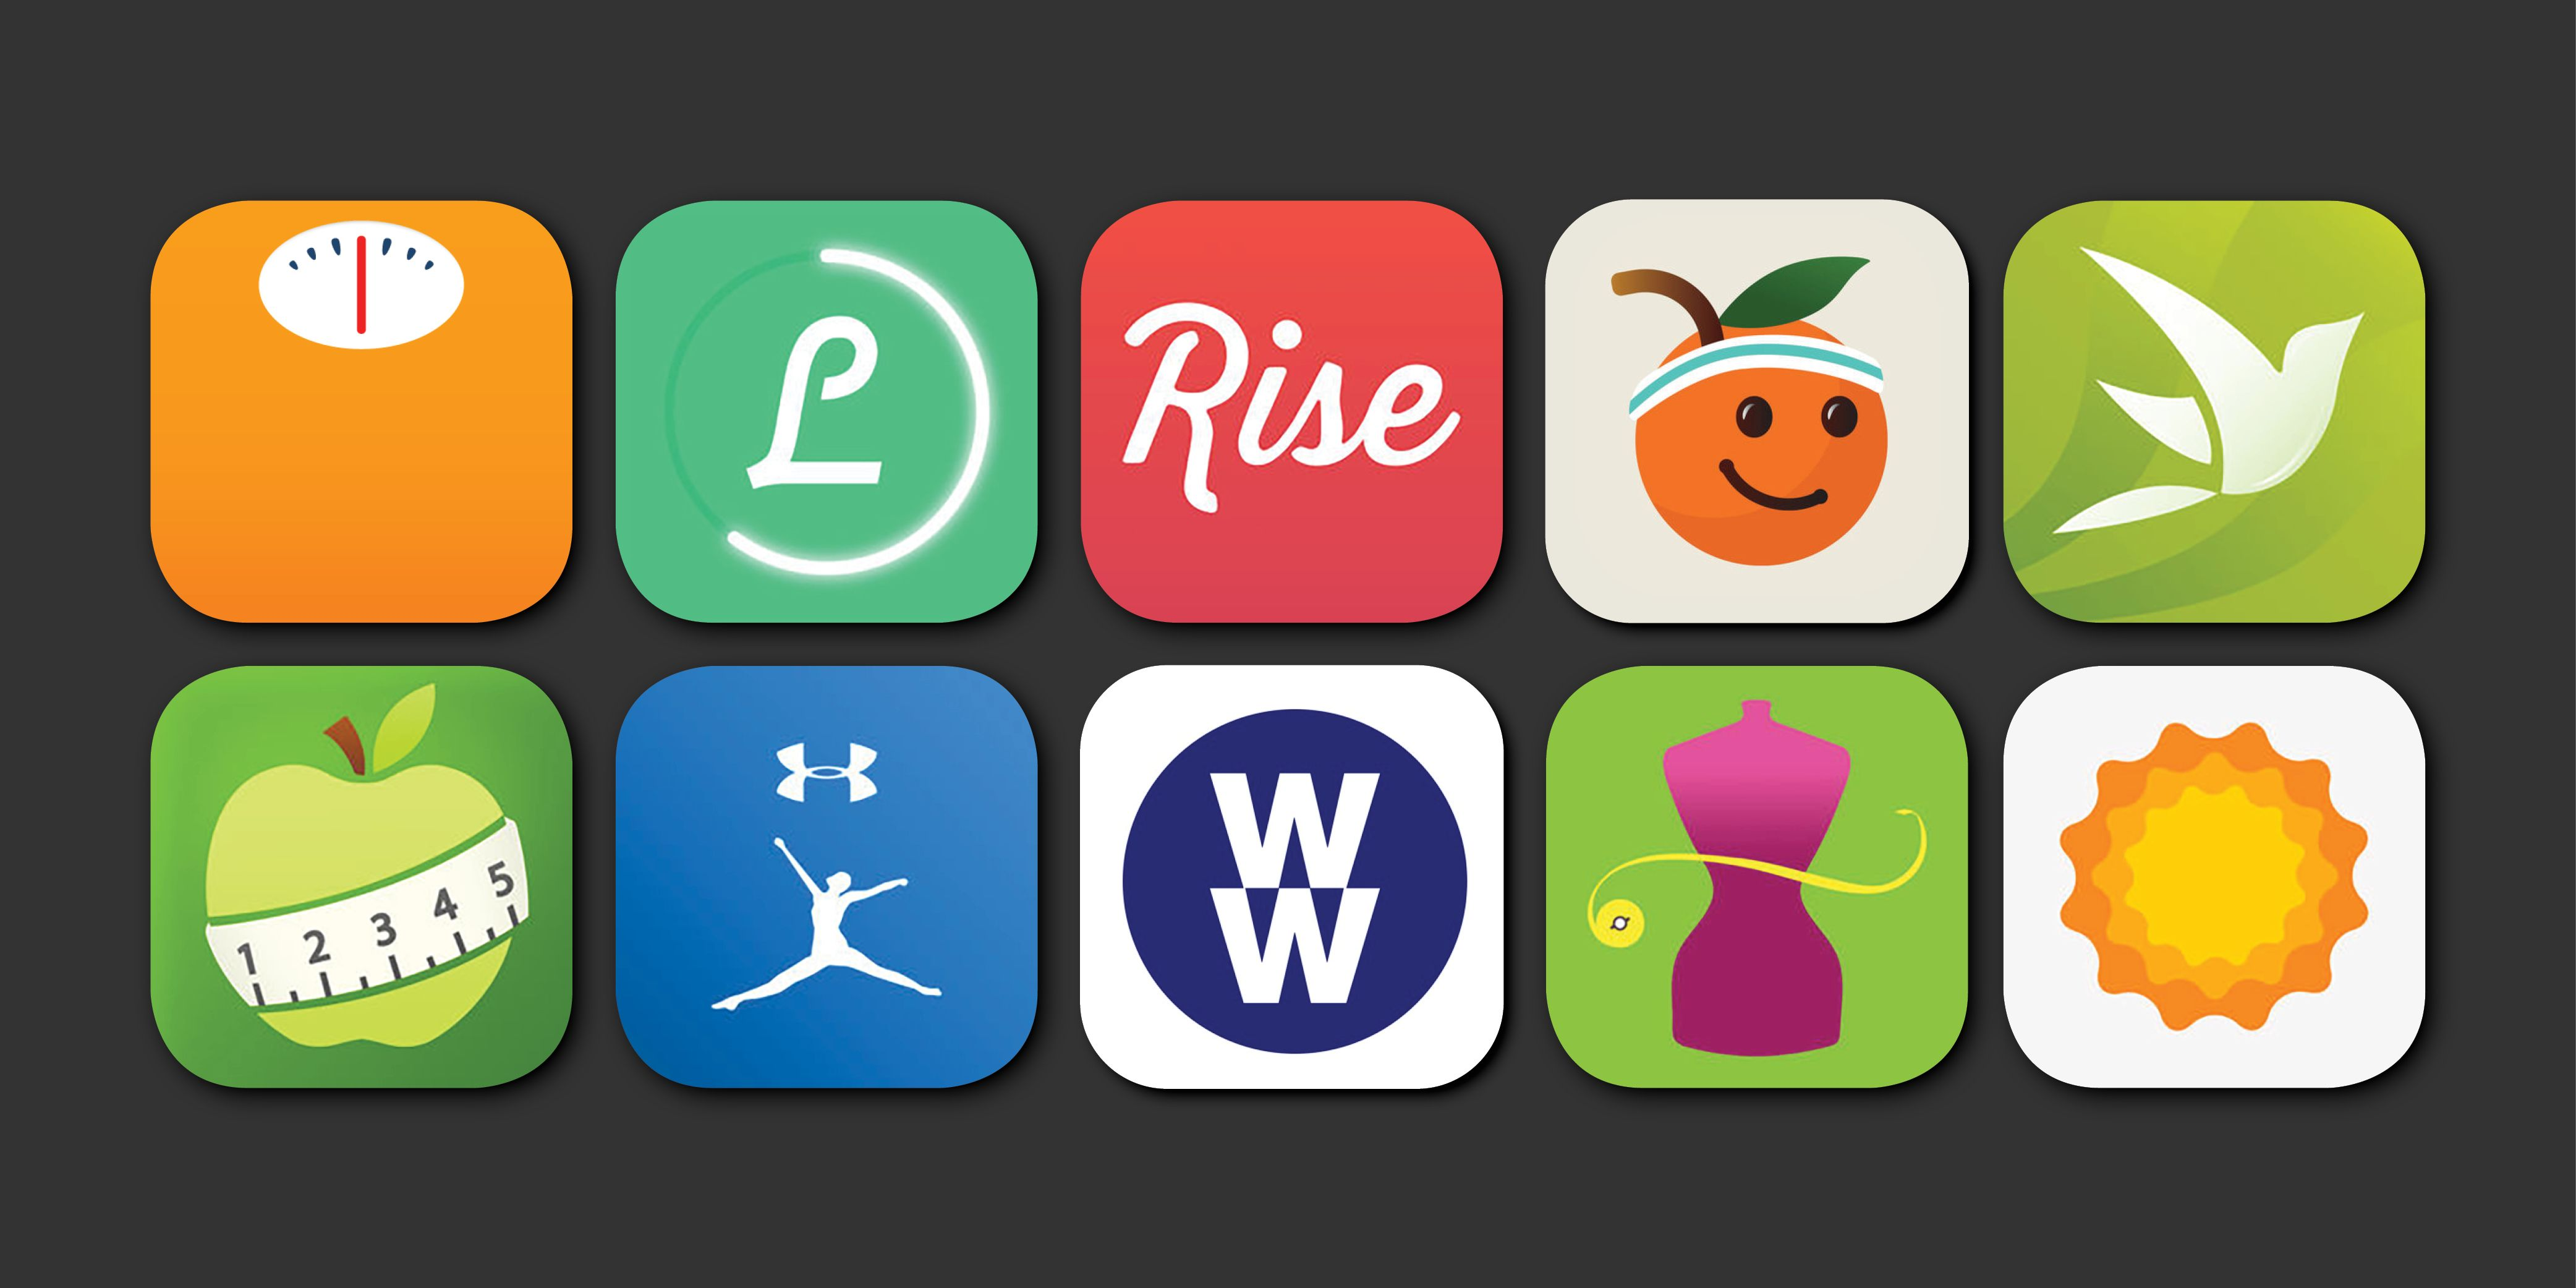 What are good apps to help you lose weight